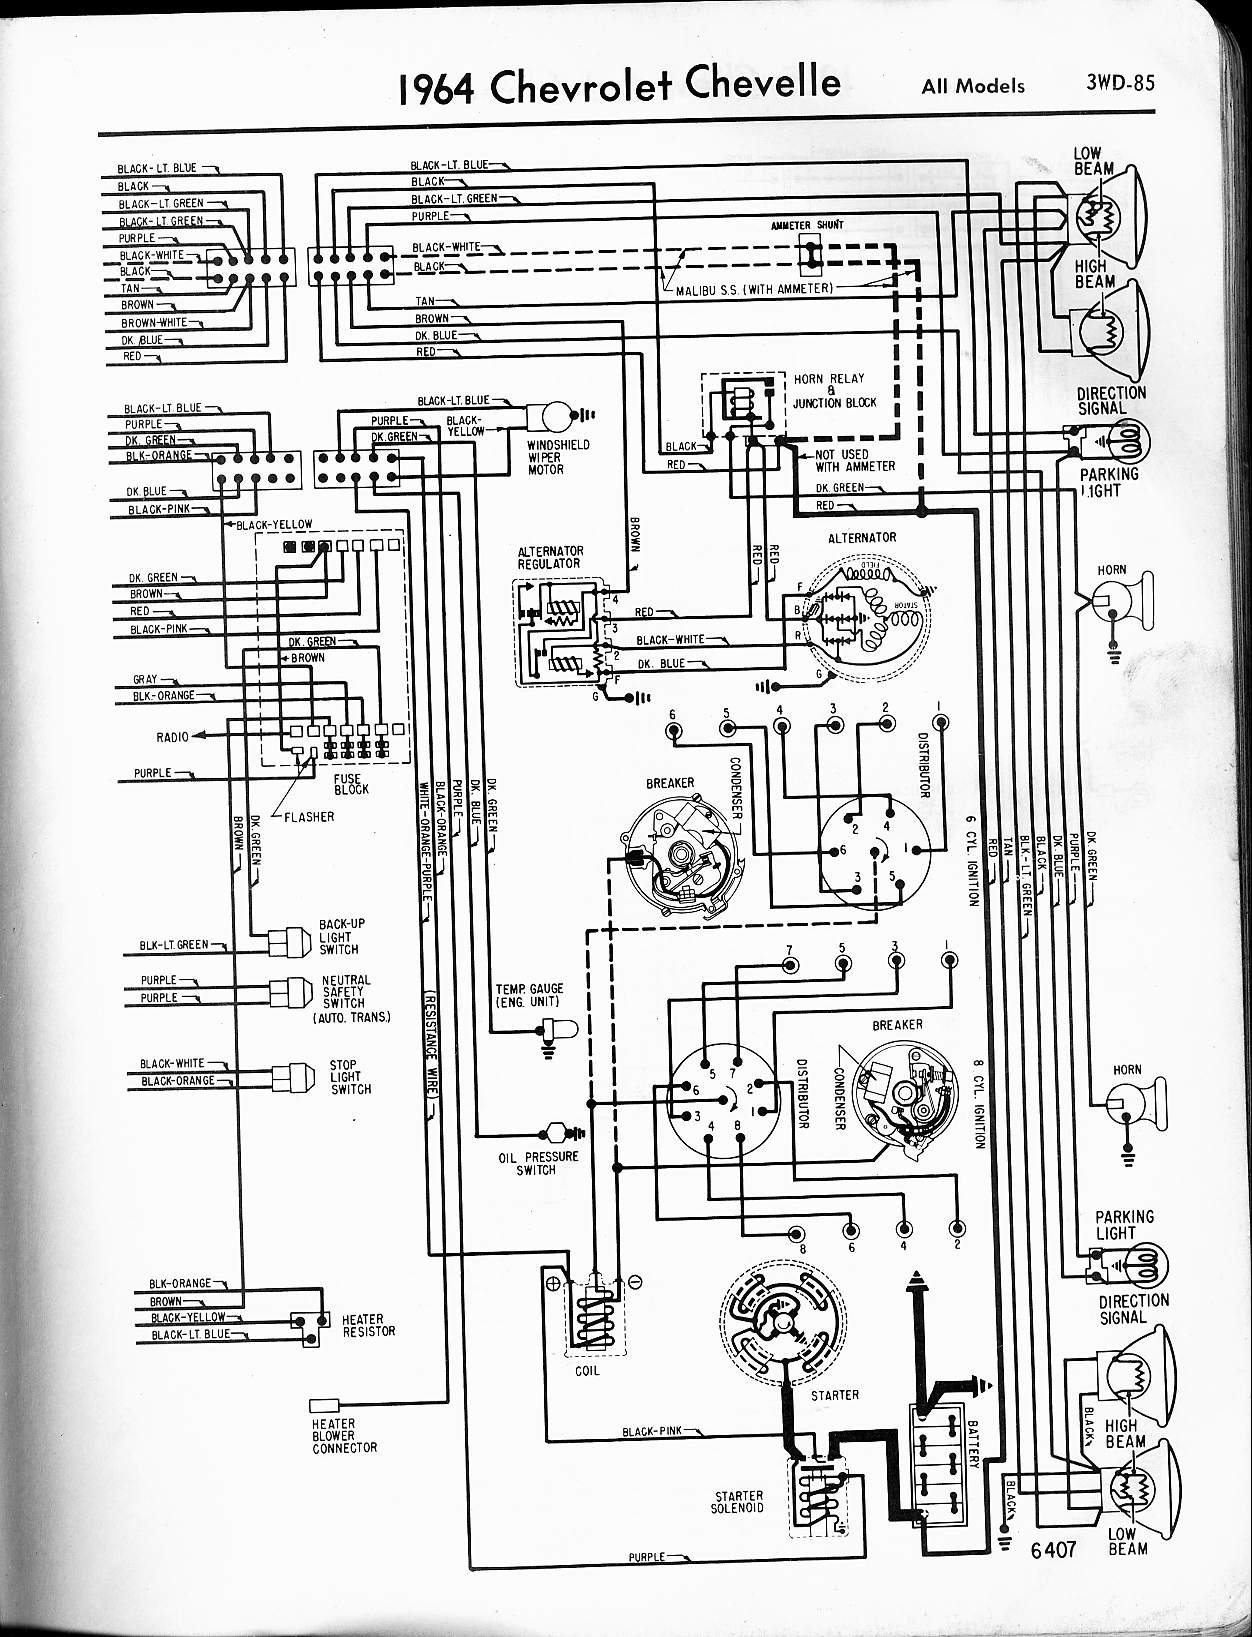 Chevy Monza Wiring Diagram Library. Chevy Diagrams Rh Wiring Wizard 1965 Chevelle Malibu Diagram. Chevrolet. 1968 327 Chevy Distributor Wiring Diagram At Scoala.co